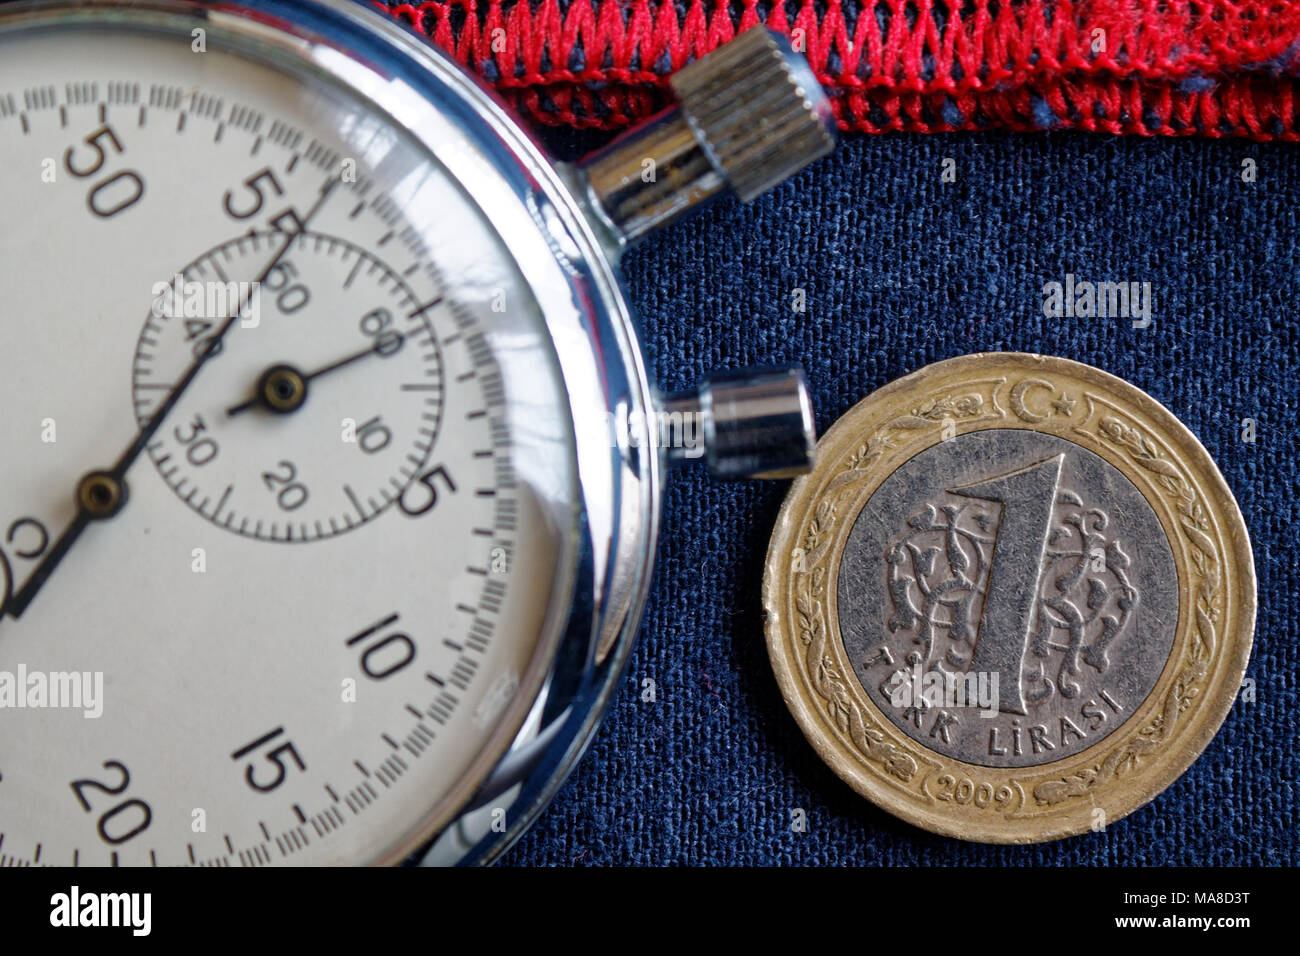 Turkish coin with a denomination of one lira and stopwatch on blue denim with red stripe backdrop - business background Stock Photo